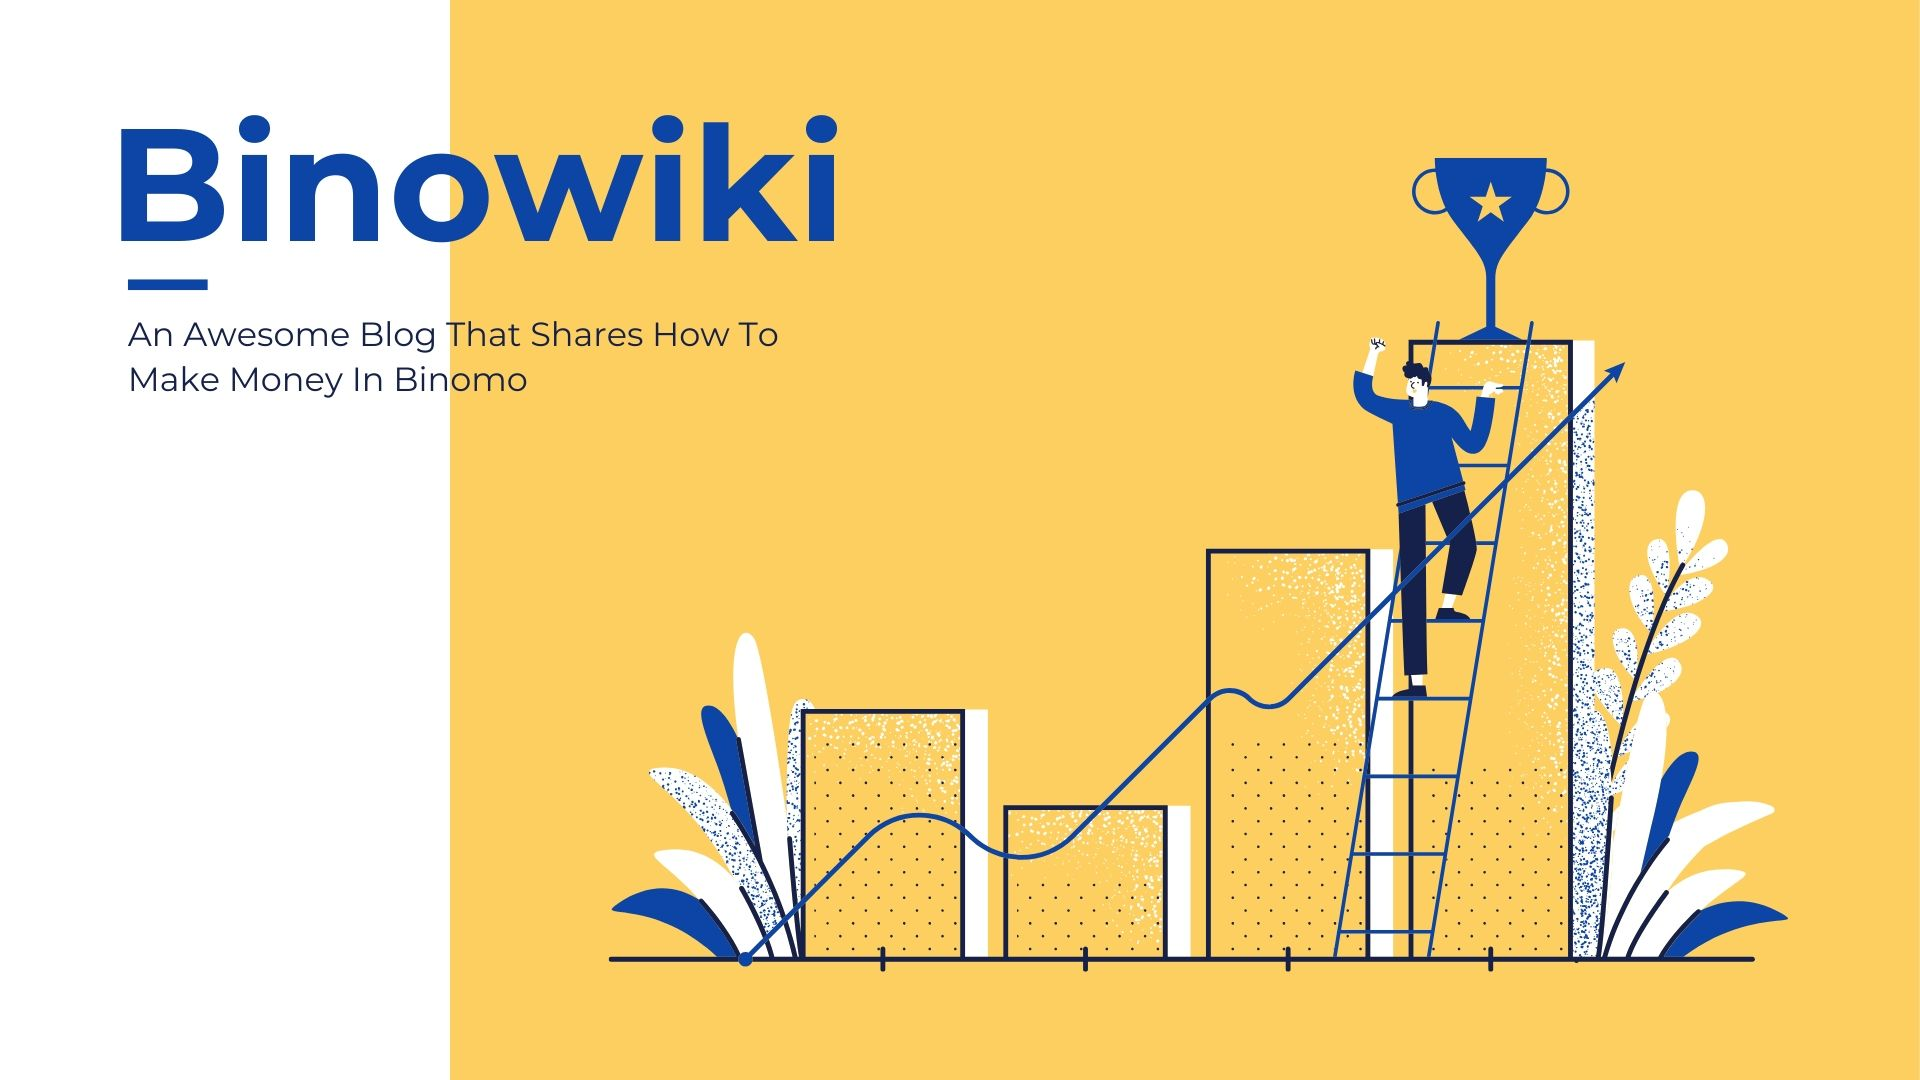 BinoWiki - An Awesome Blog That Shares How To Make Money In Binomo